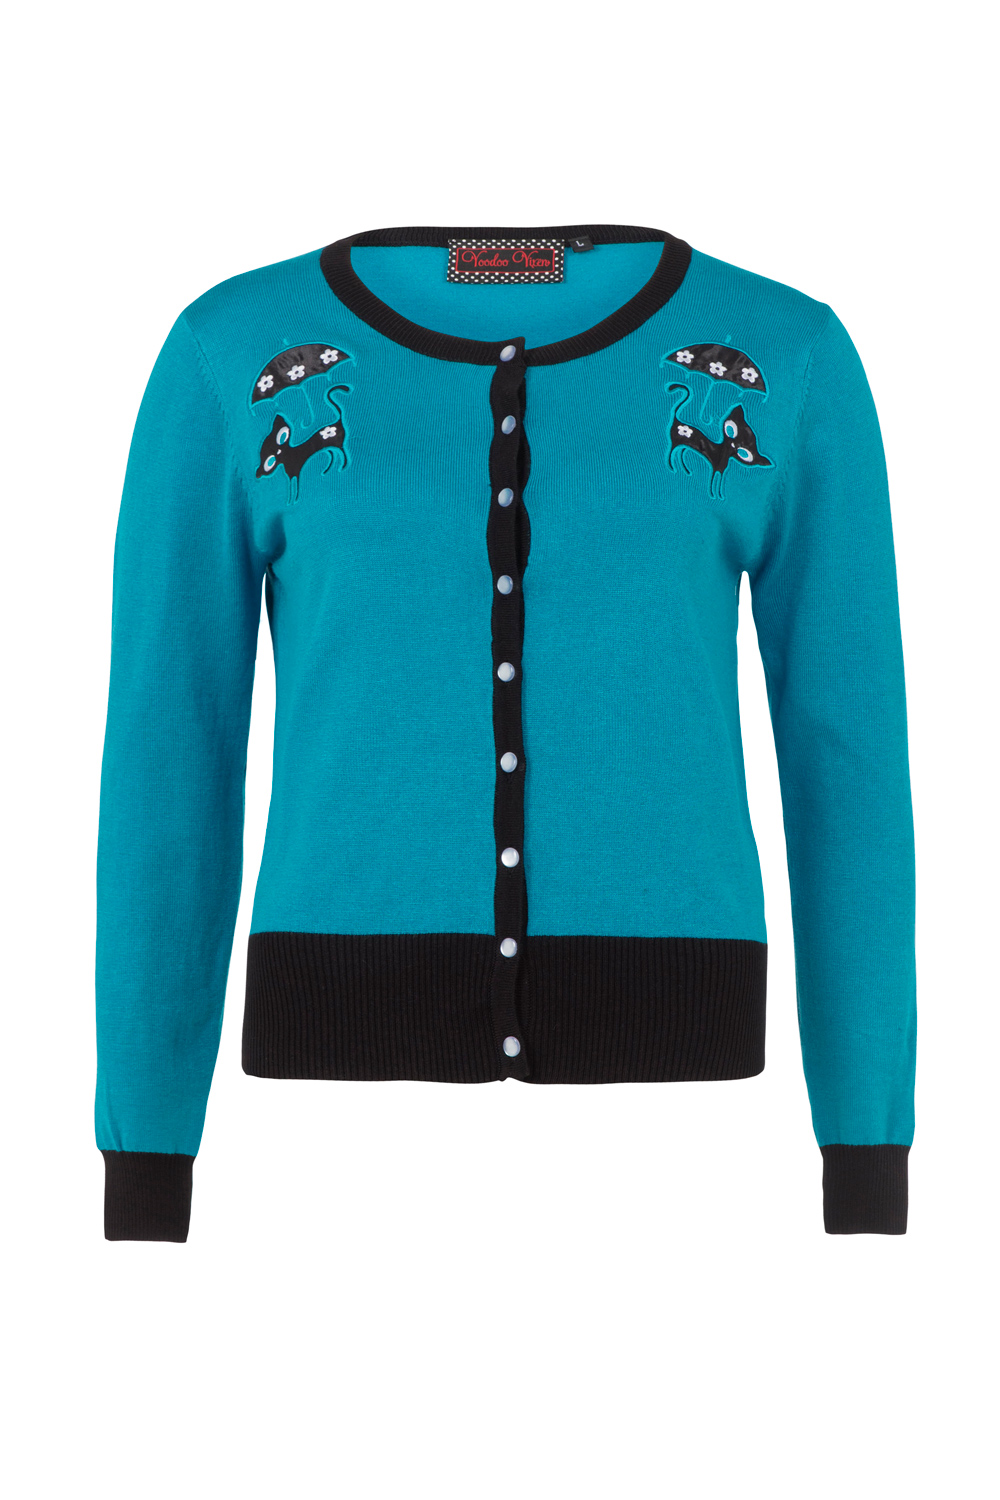 Clarissa Blue Retro Cat Plus Size Cardigan